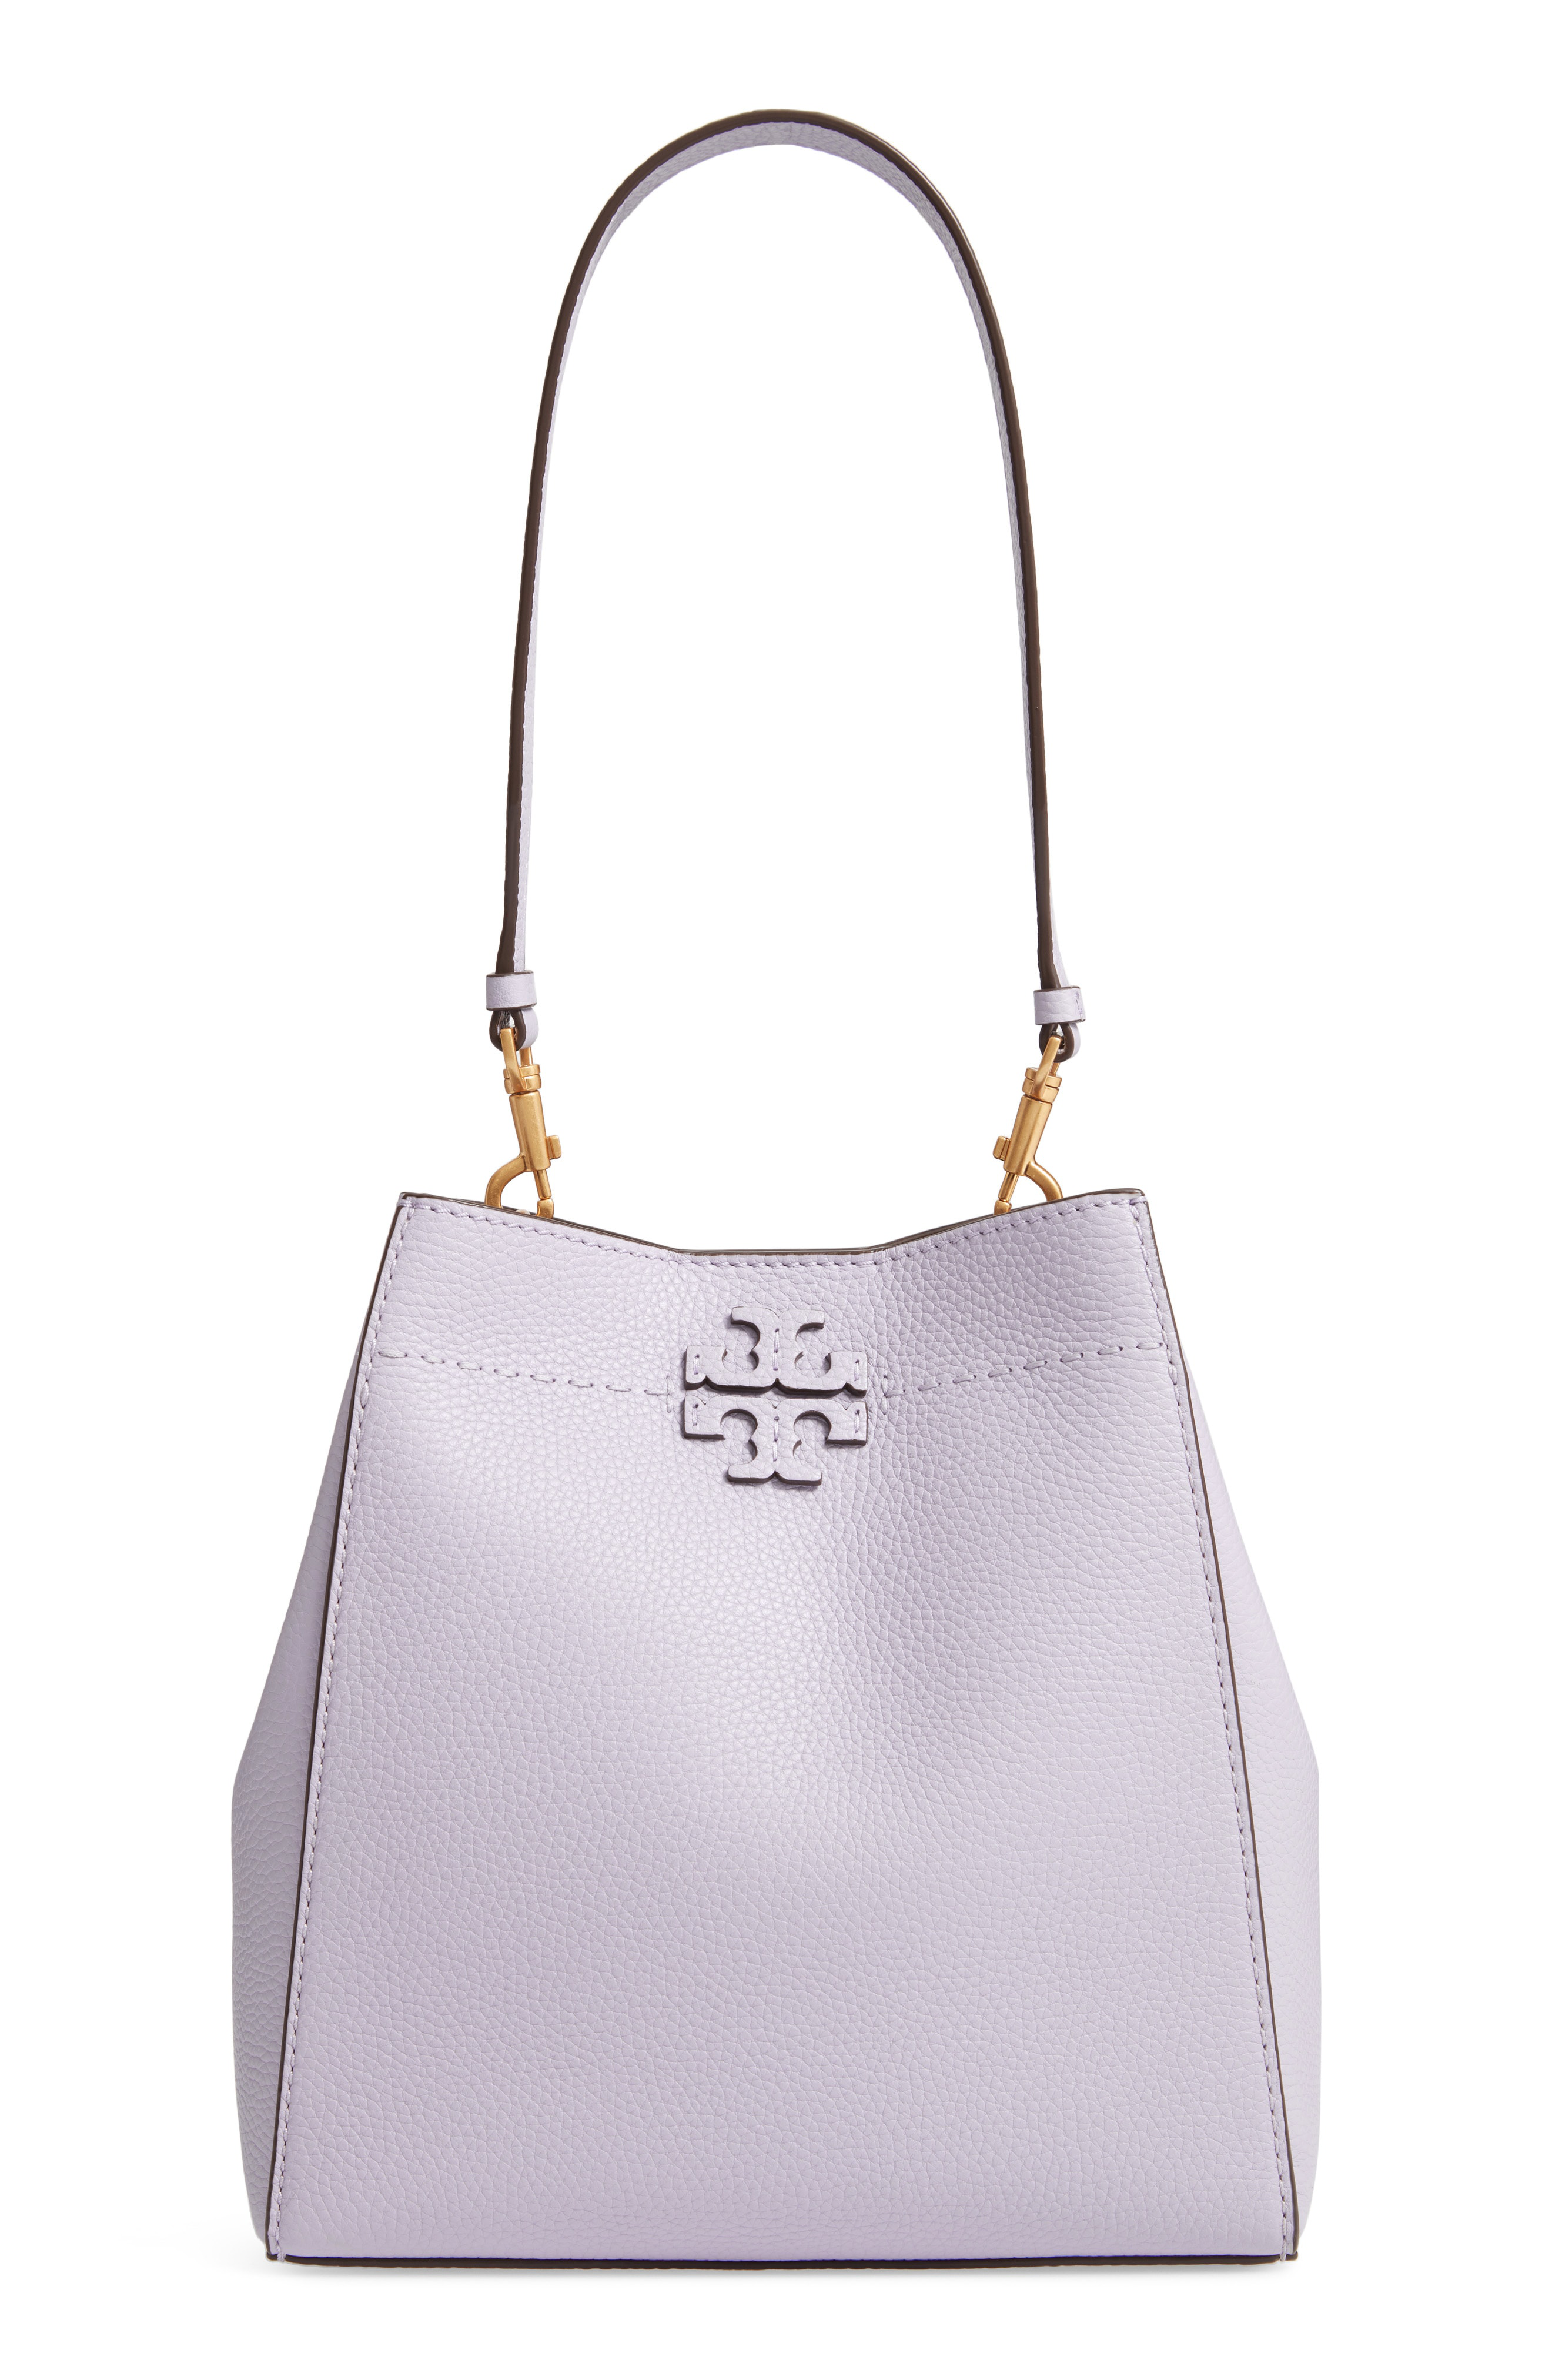 9dbe3912fa1 Tory Burch Mcgraw Leather Hobo - Purple In Pale Violet